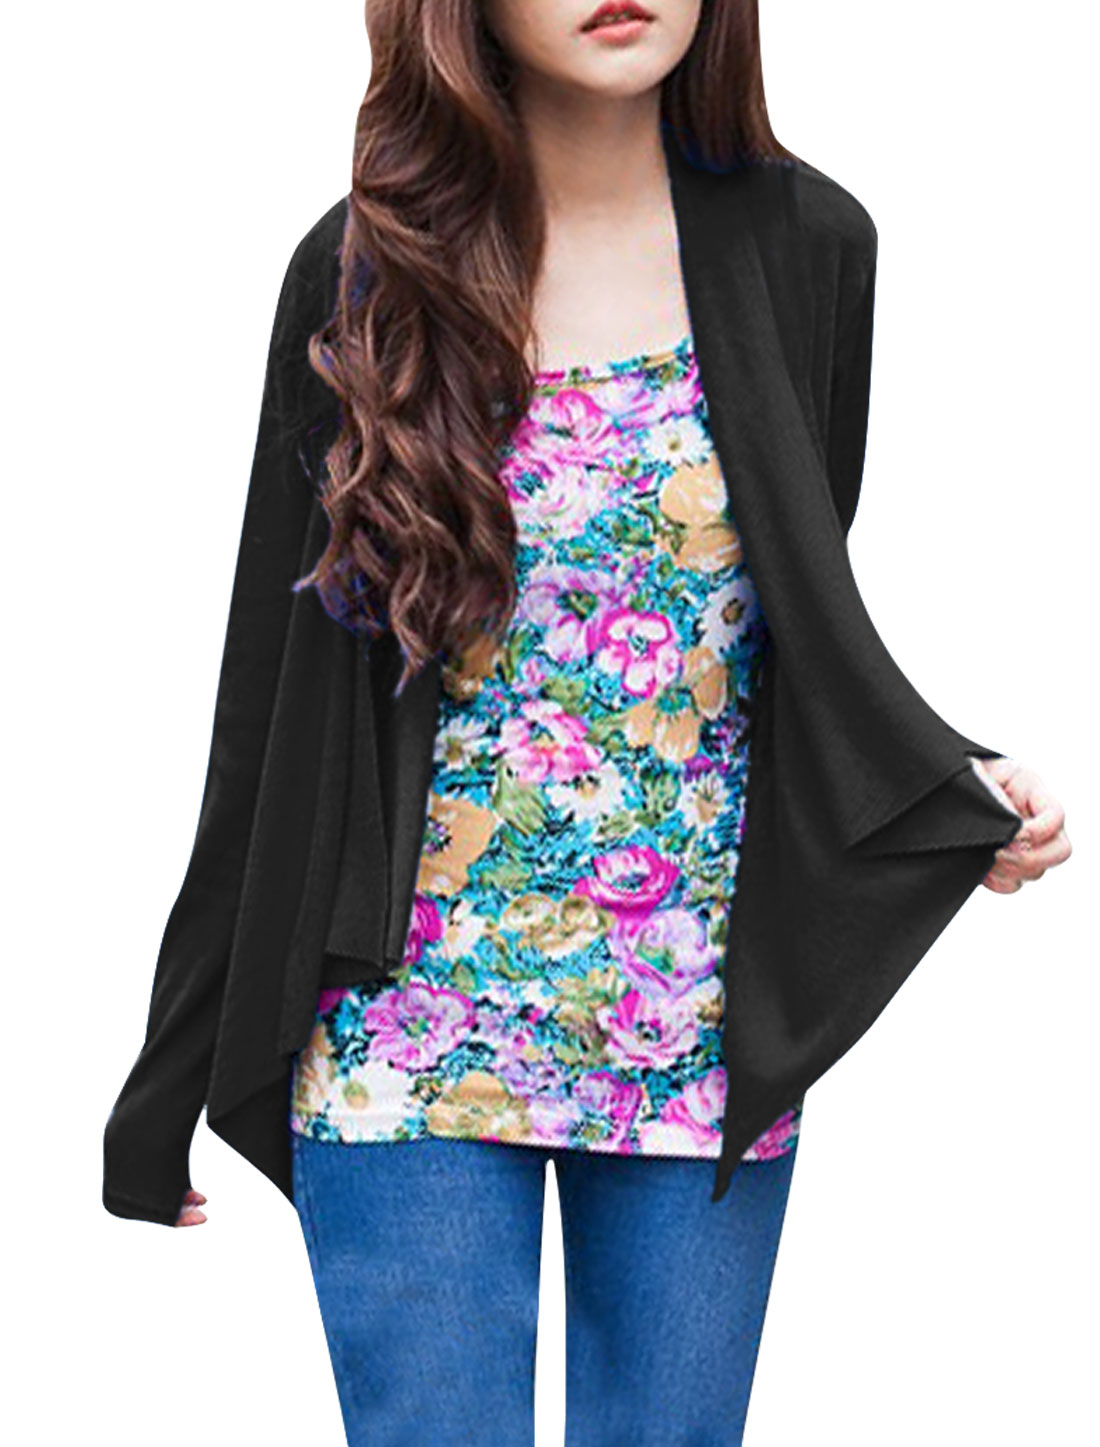 Ladies Long Sleeve Open Front Draped Design Solid Black Spring Cardigan XS